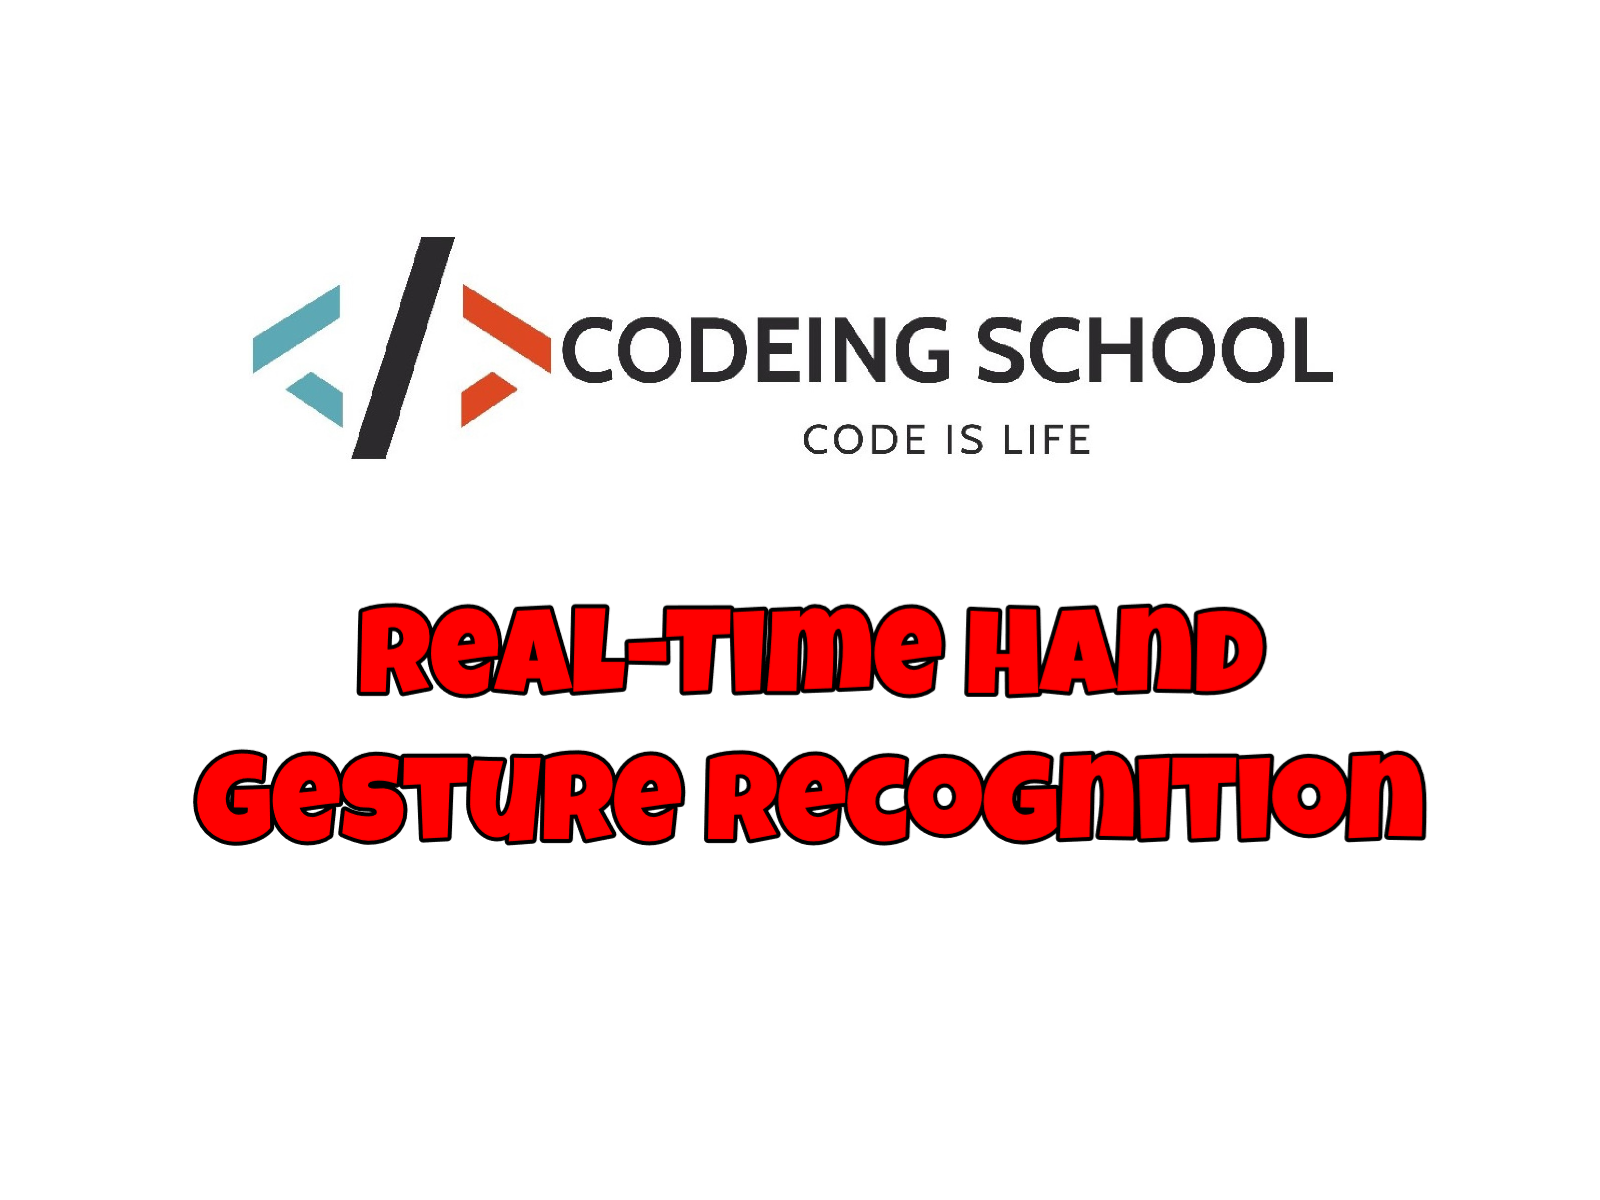 Hand gesture recognition using opencv source code